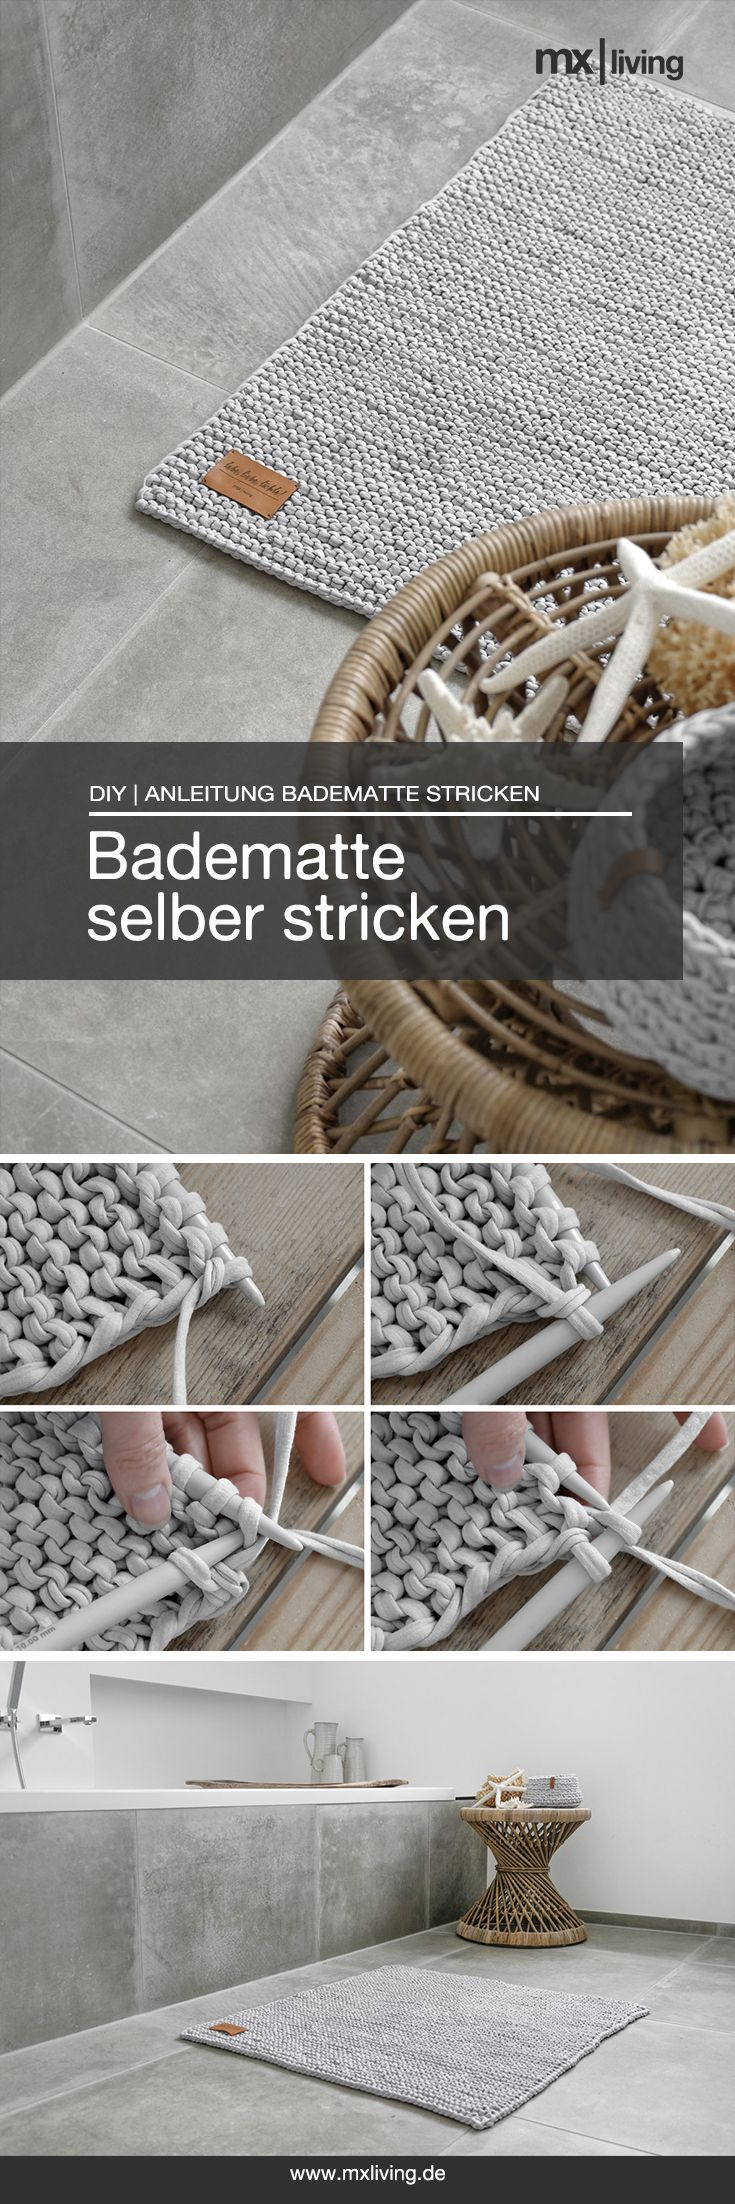 661 best Basteln images on Pinterest | Craft, Creative ideas and ...